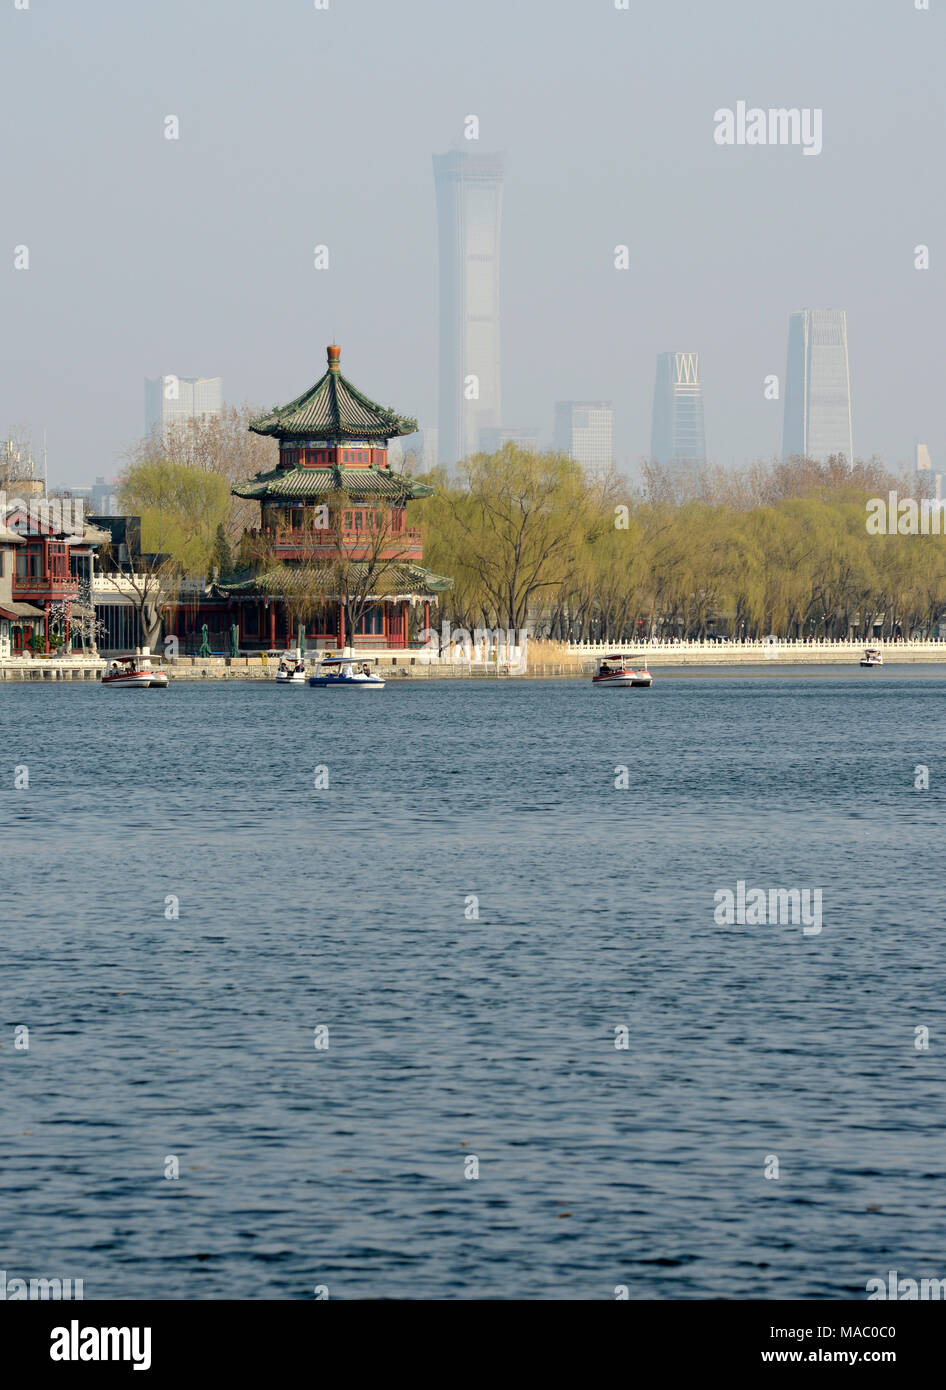 View of a pavilion in Shichahai scenic area in Houhai, with the outline of buildings of the CBD visible in the distance behind. Beijing, China - Stock Image